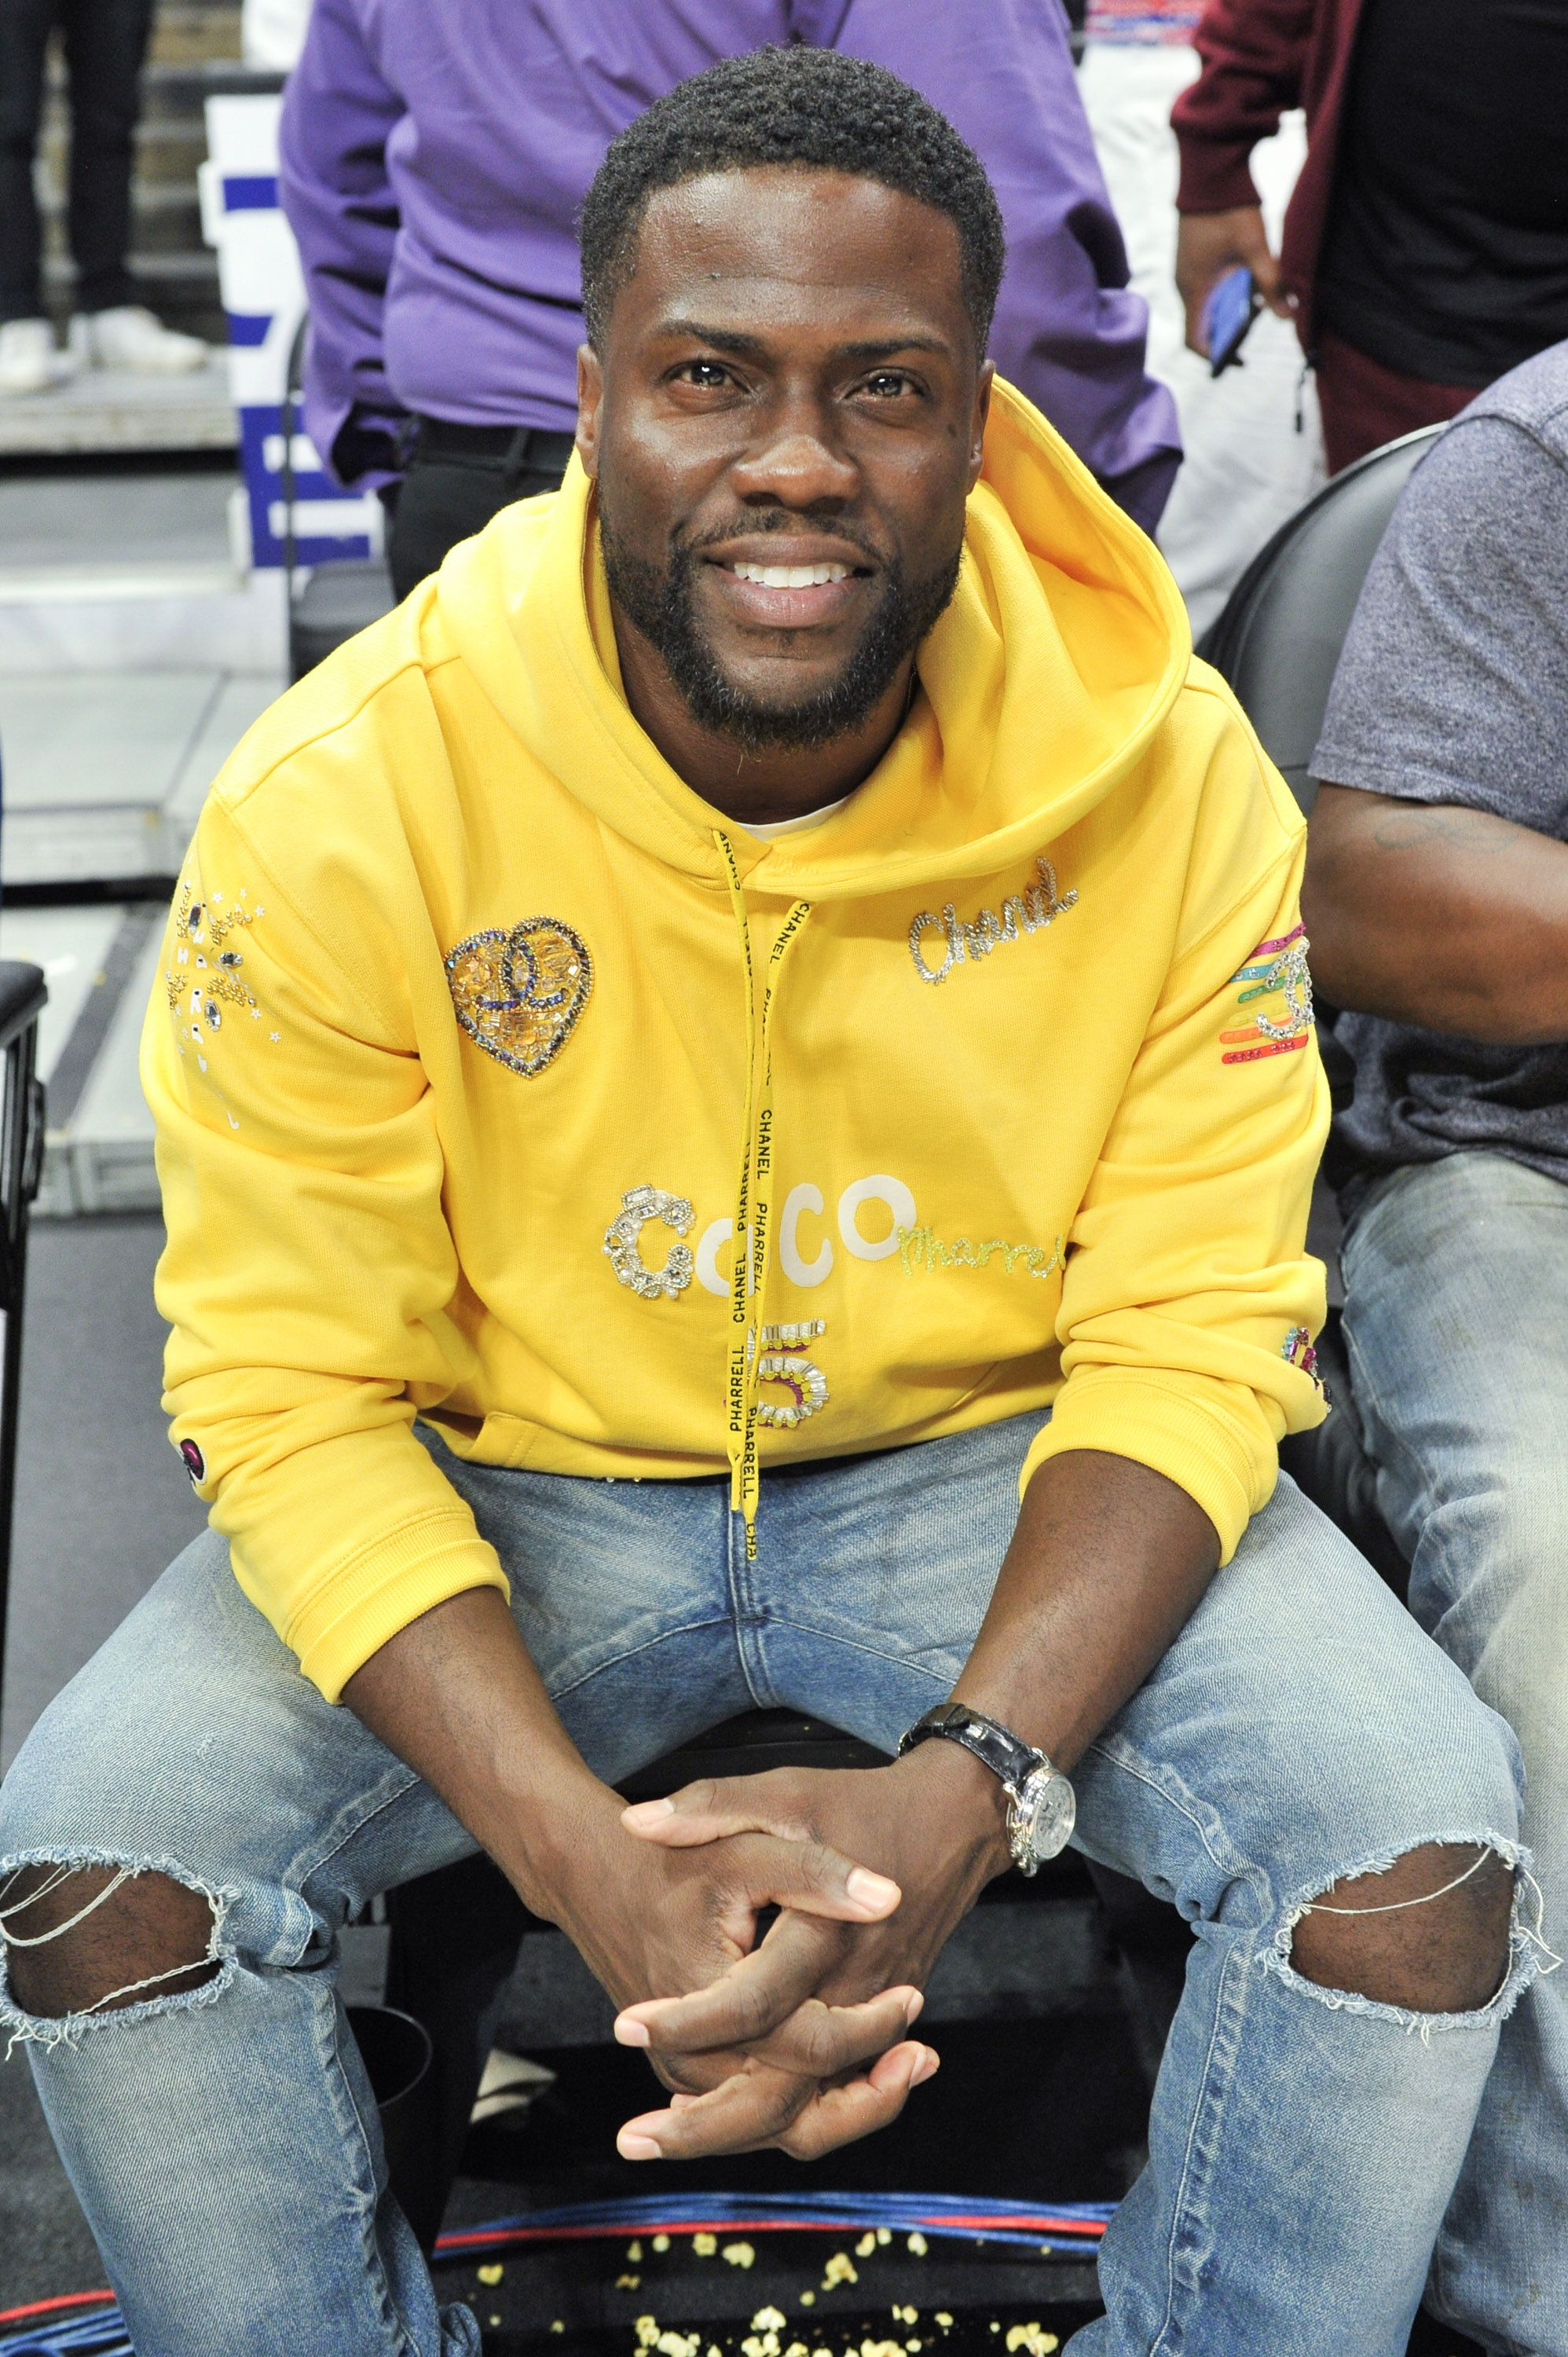 Kevin Hart at a basketball game between the L.A Clippers and the Toronto Raptors on November 11, 2019 in Los Angeles, California. | Source: Getty Images